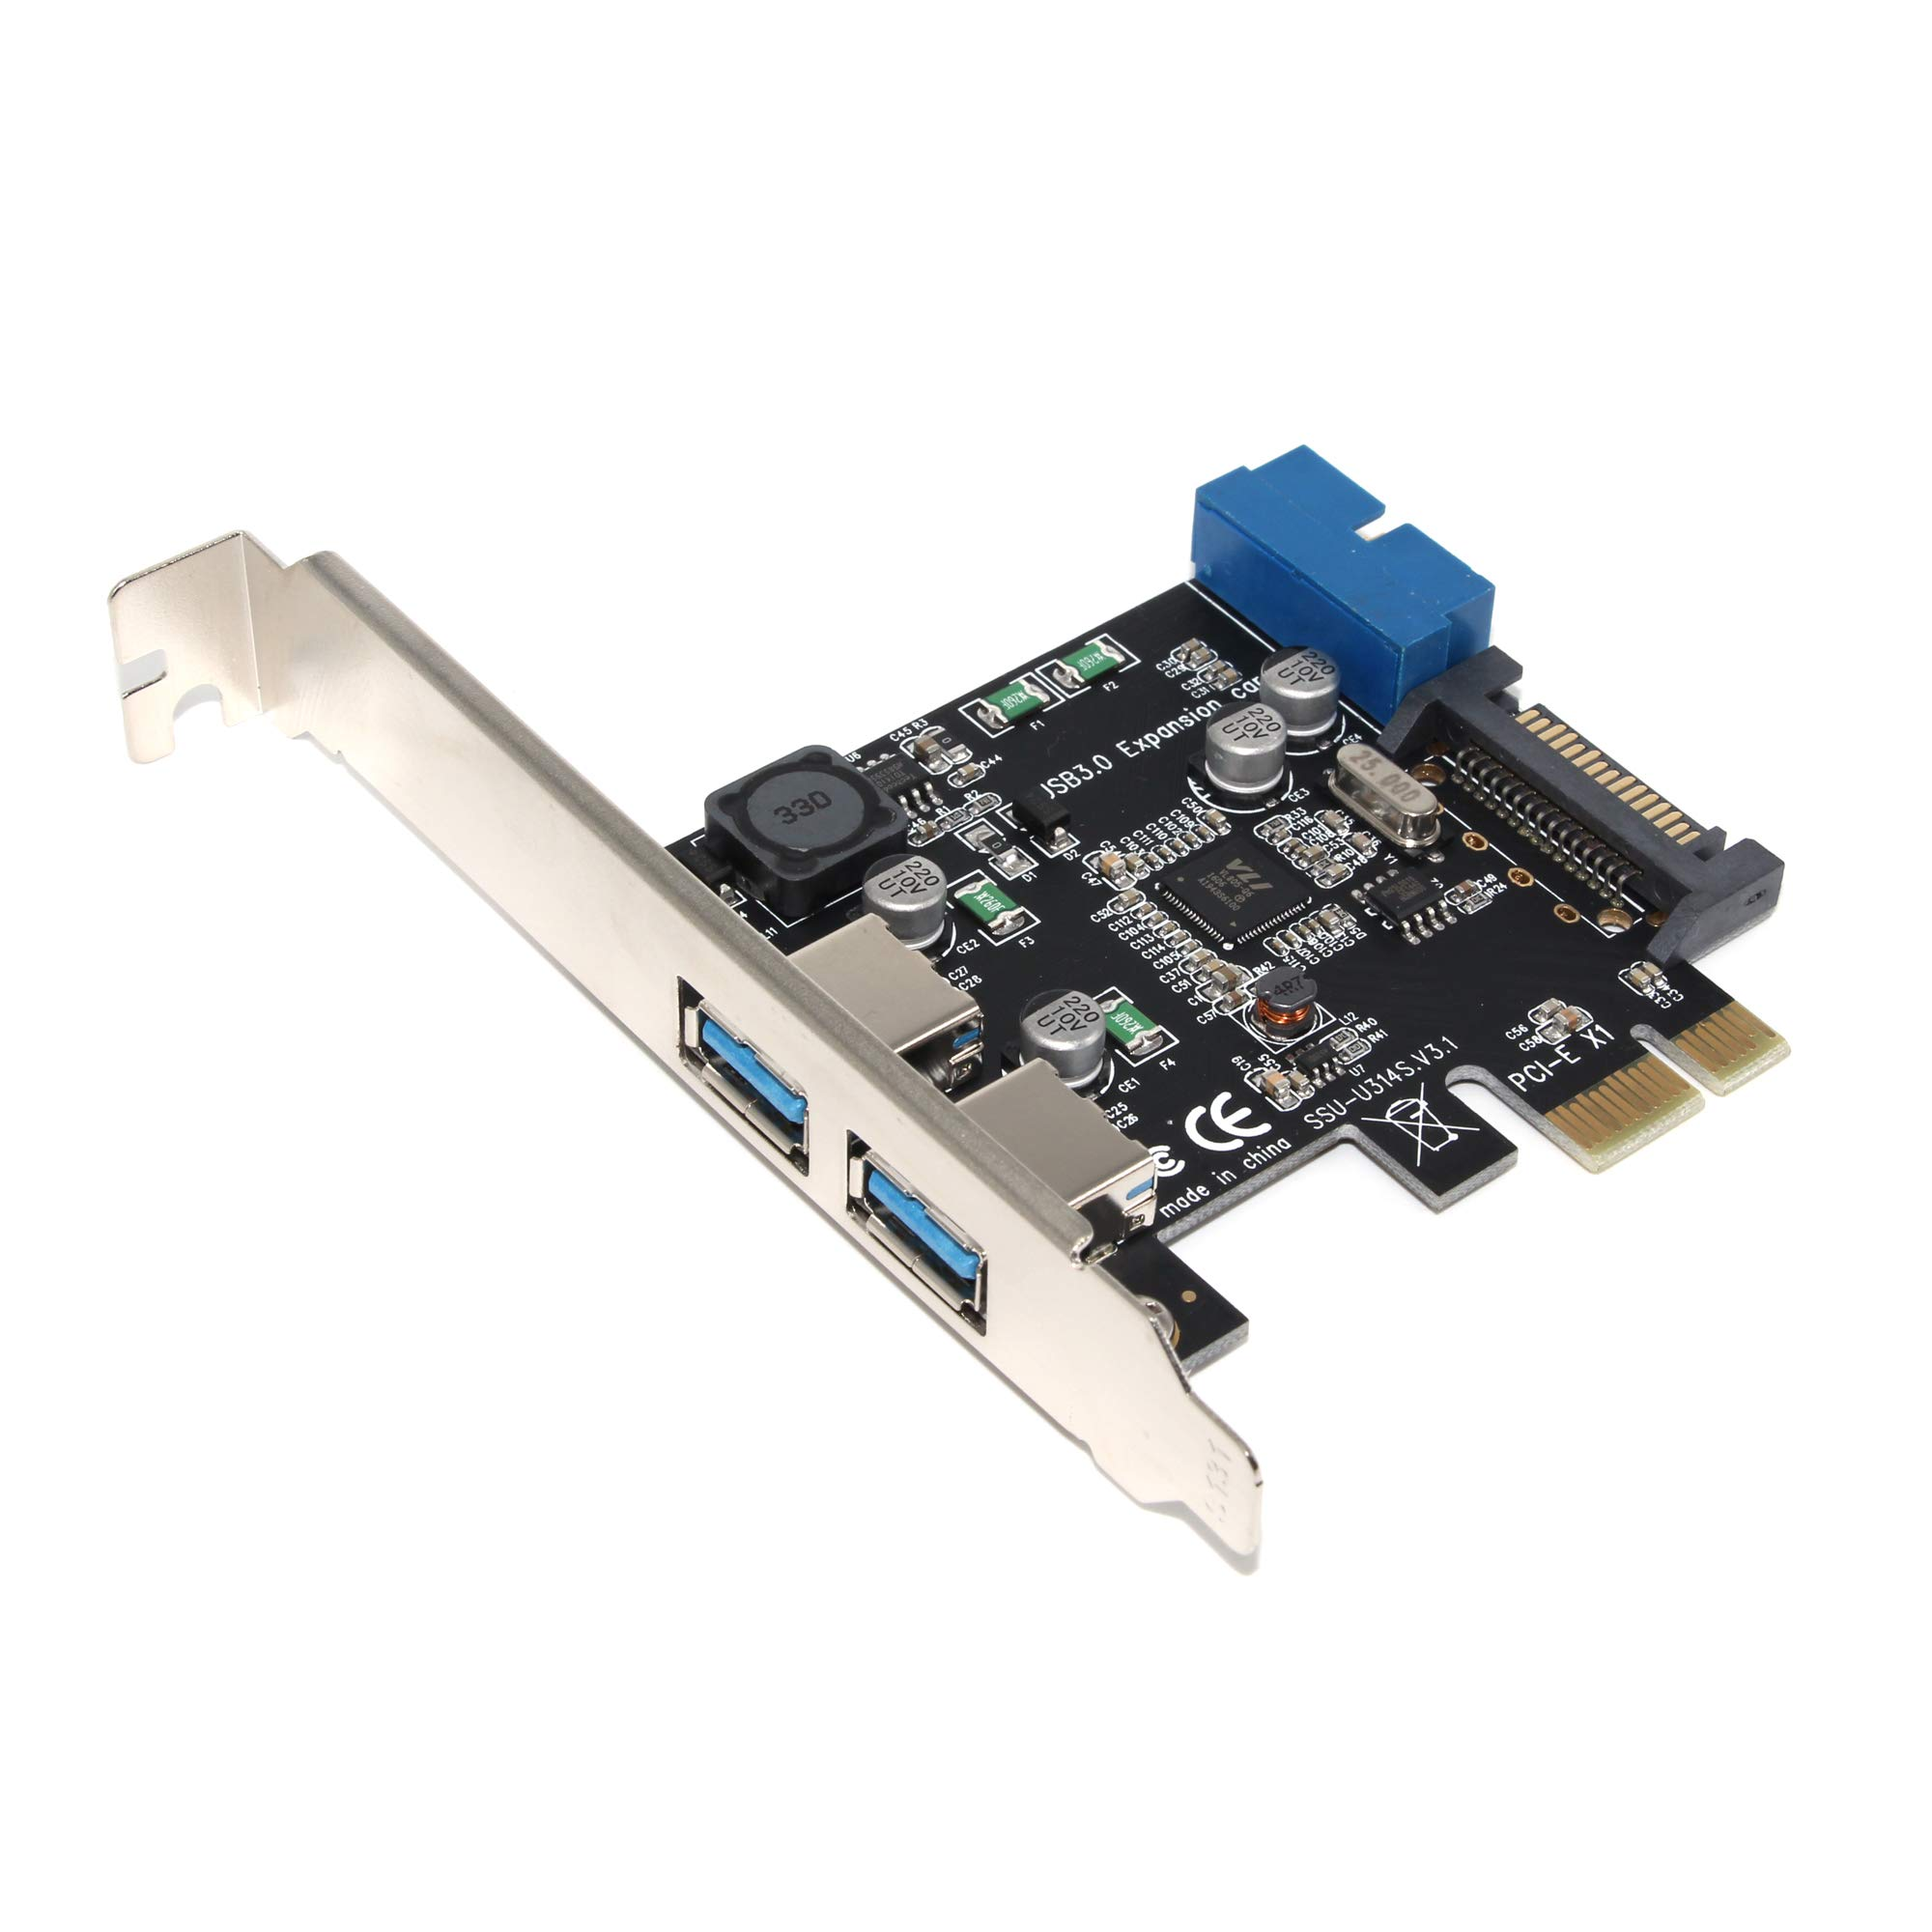 Padarsey Superspeed 2-port Usb 3.0 Pci-e Pci Express 19-pin